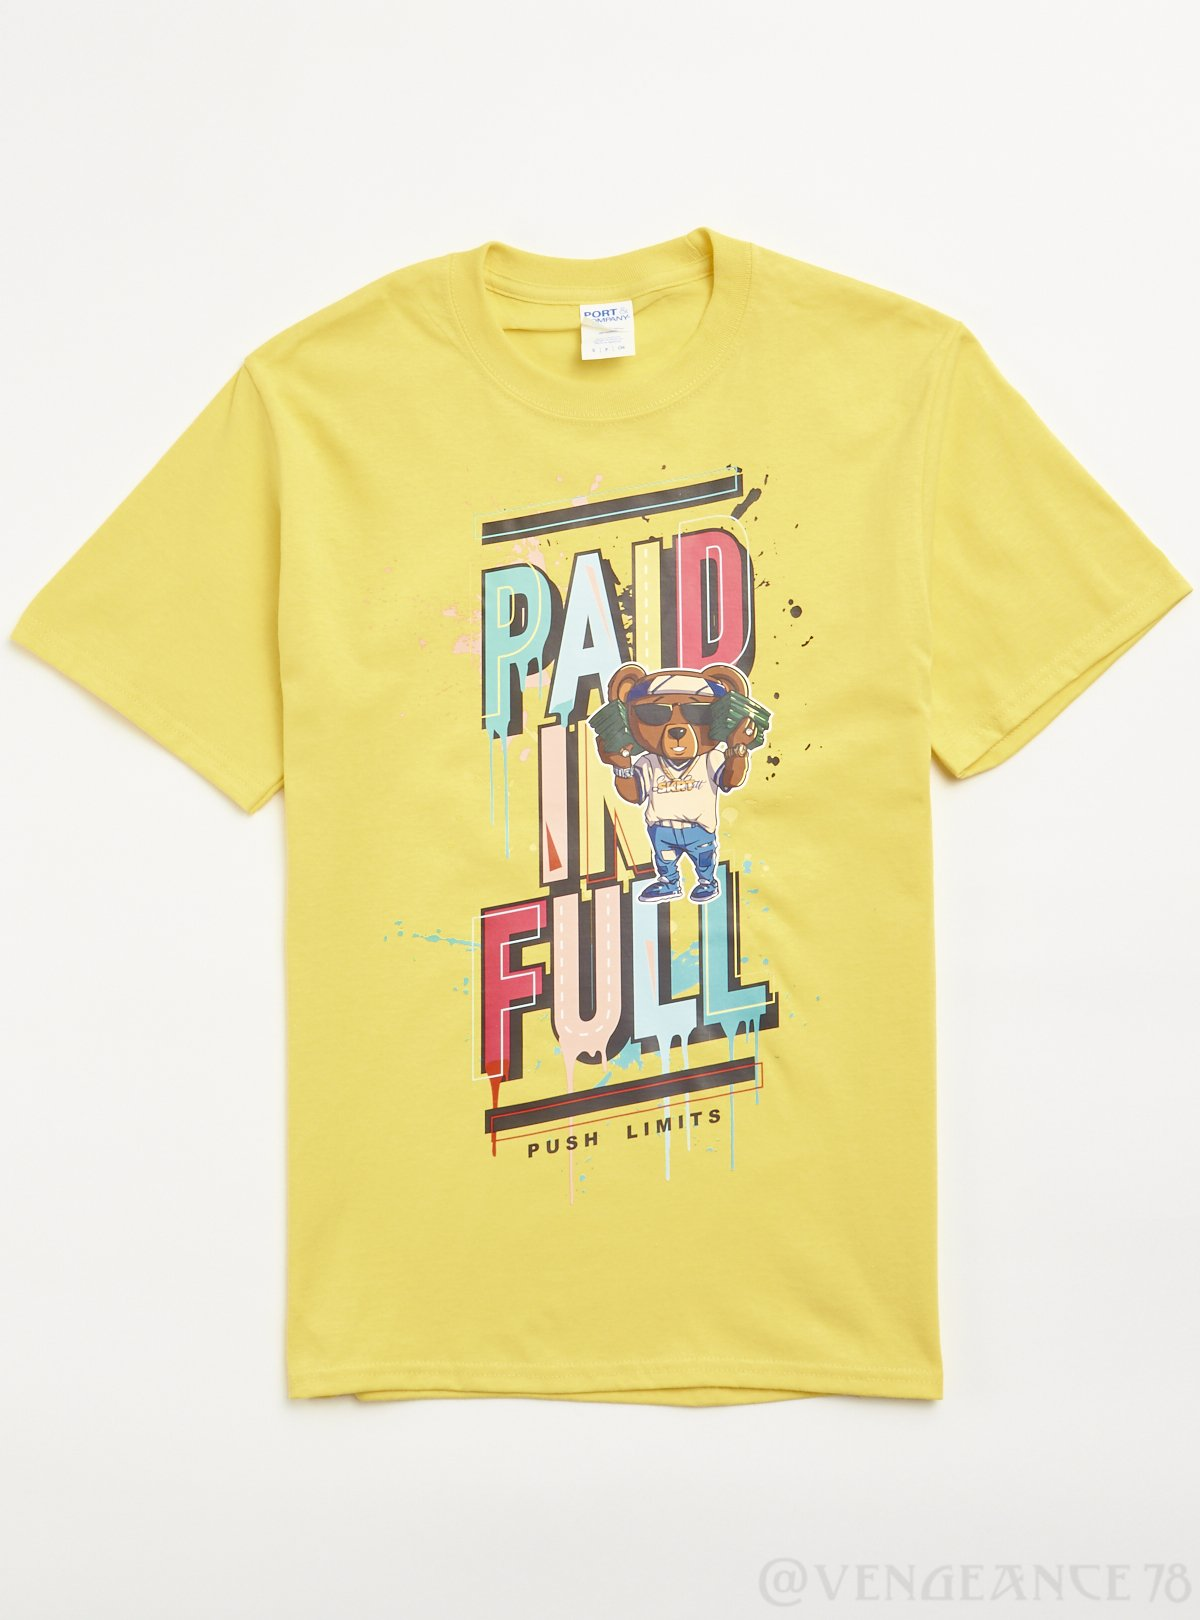 Port & Company T-Shirt - Paid in Full - Yellow